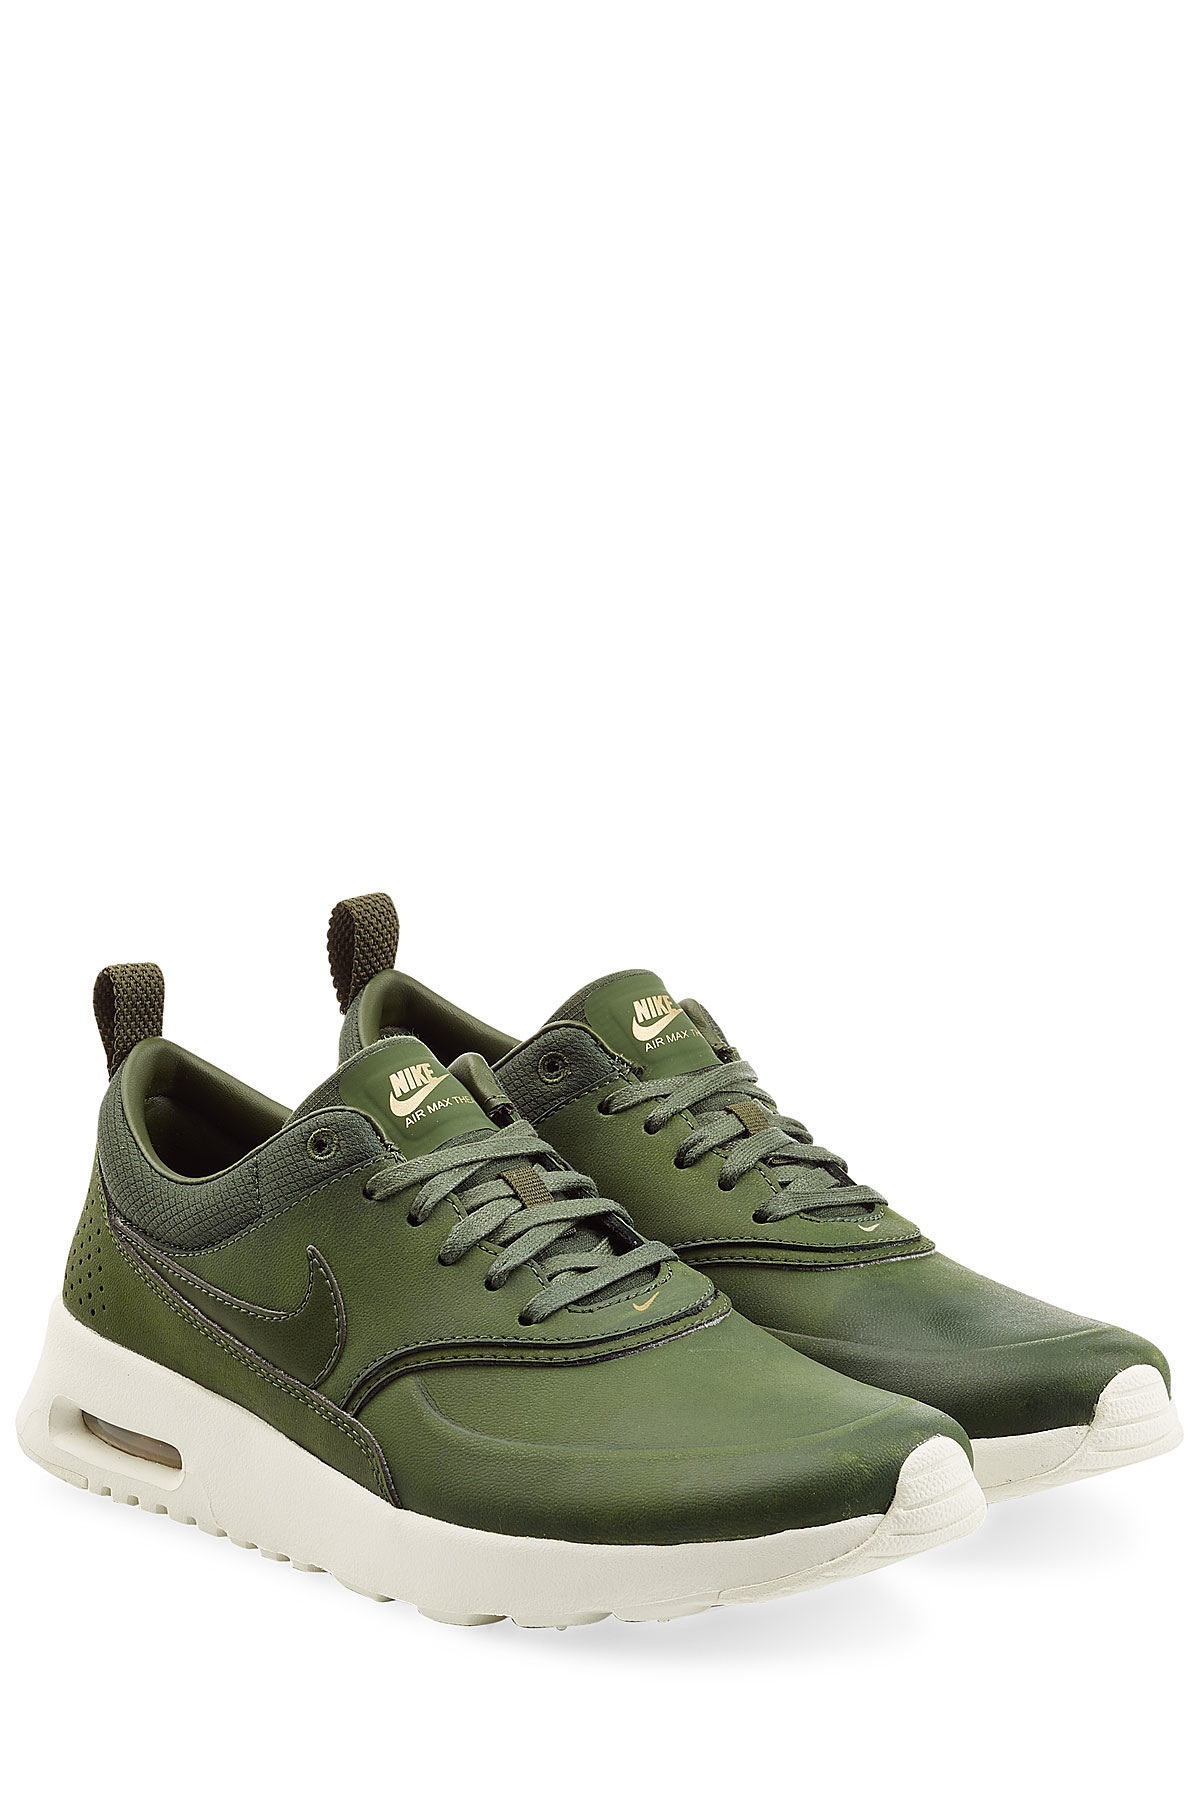 nike air max thea premium leather sneakers green in. Black Bedroom Furniture Sets. Home Design Ideas